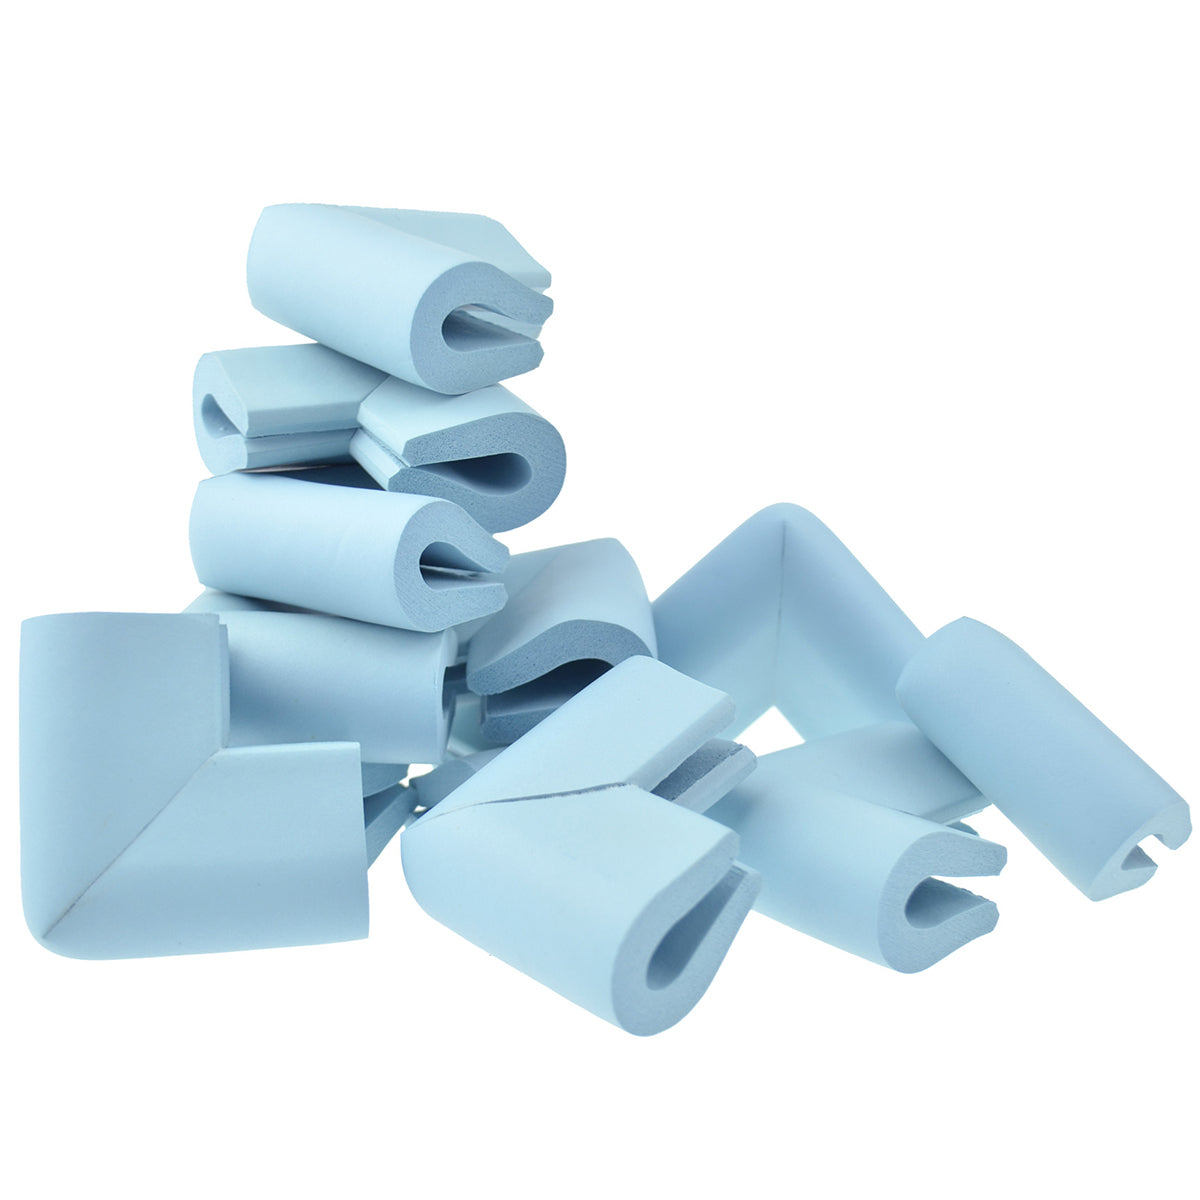 12 pieces skyblue u-shaped foam corner protectors show with a white background.